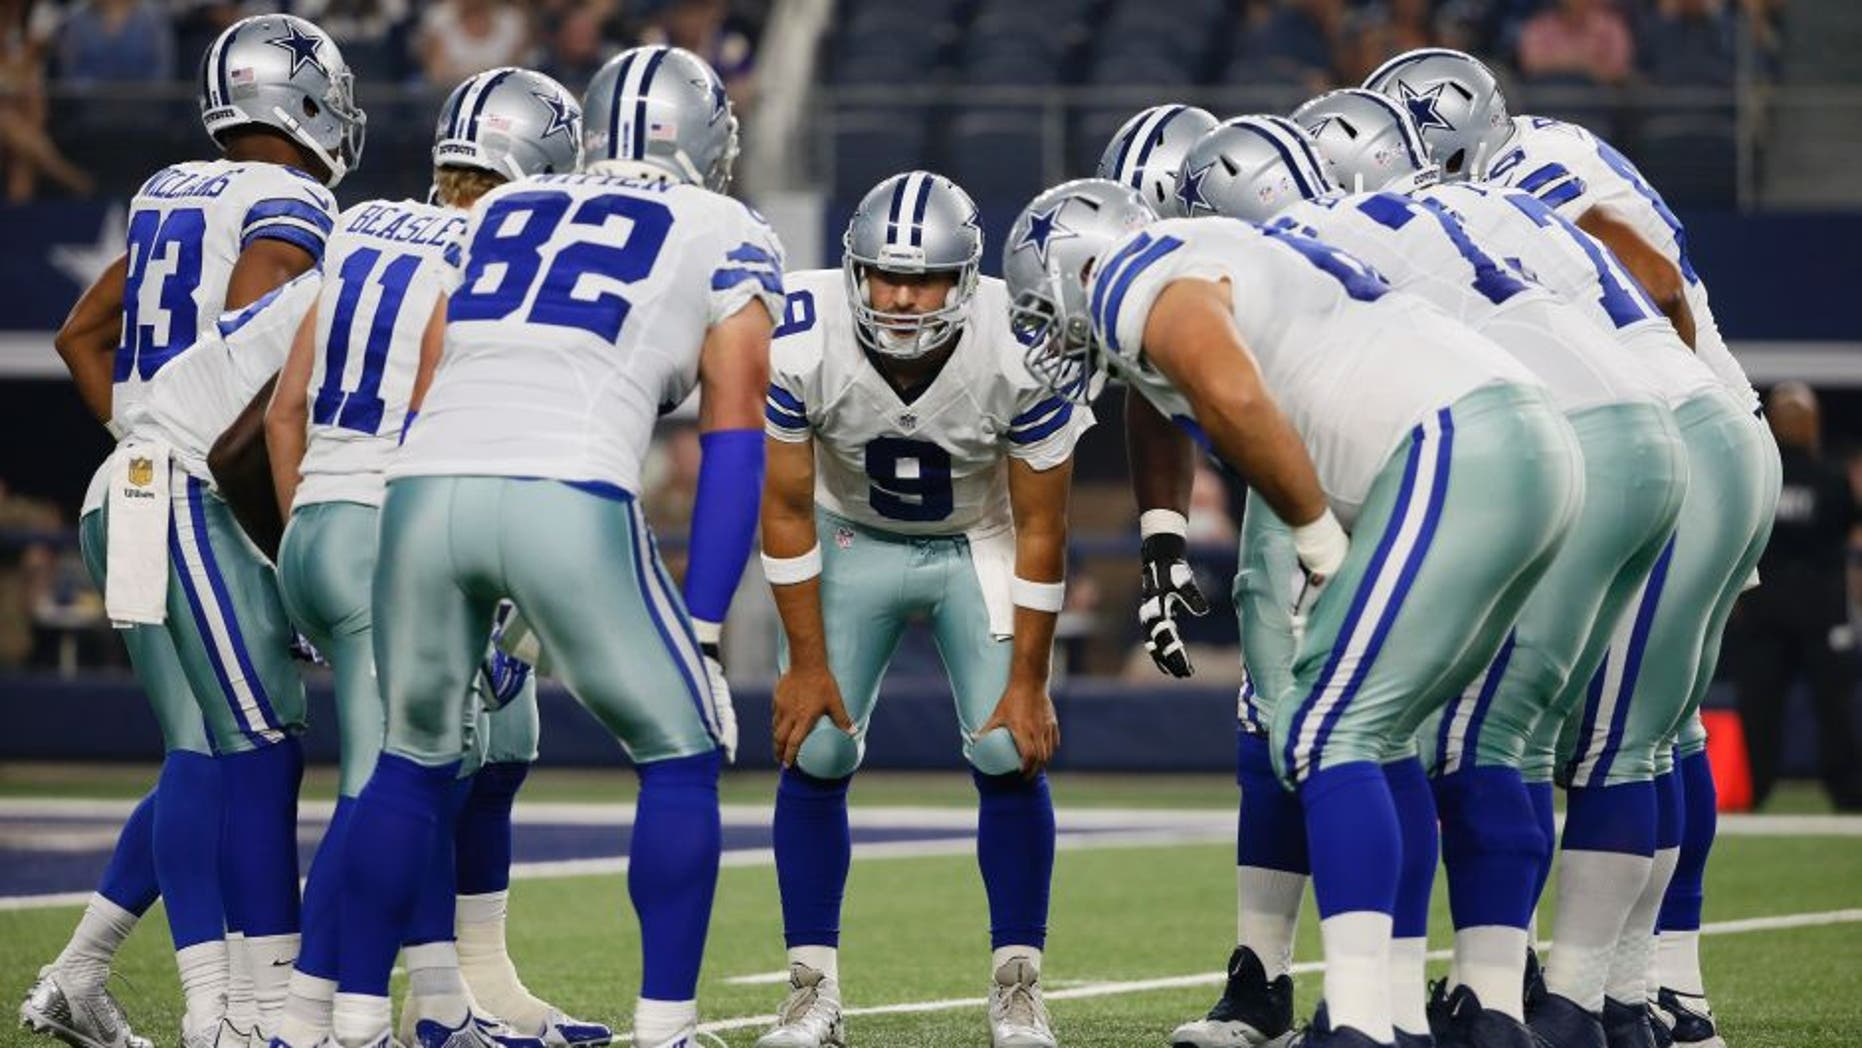 Dallas Cowboys quarterback Tony Romo (9) huddles with the team against the Minnesota Vikings during the first half of a preseason NFL football game Saturday, Aug. 29, 2015, in Arlington, Texas. (AP Photo/Tony Gutierrez)